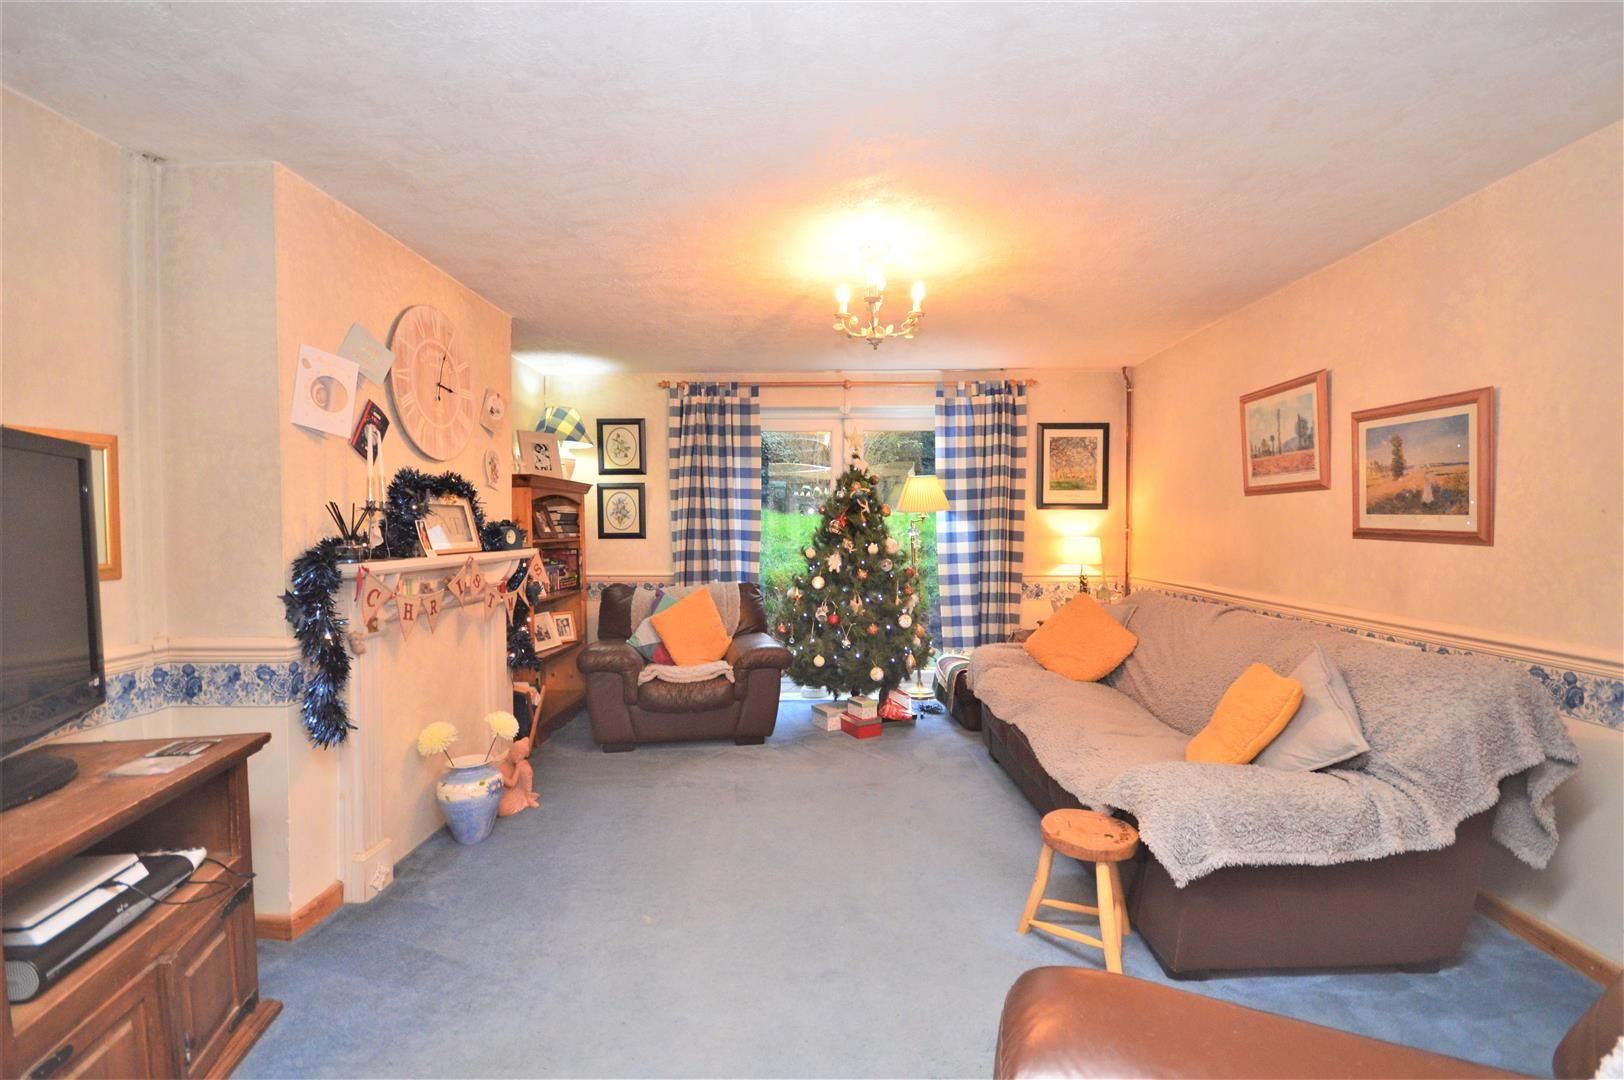 3 bed semi-detached for sale in Much Birch  - Property Image 6